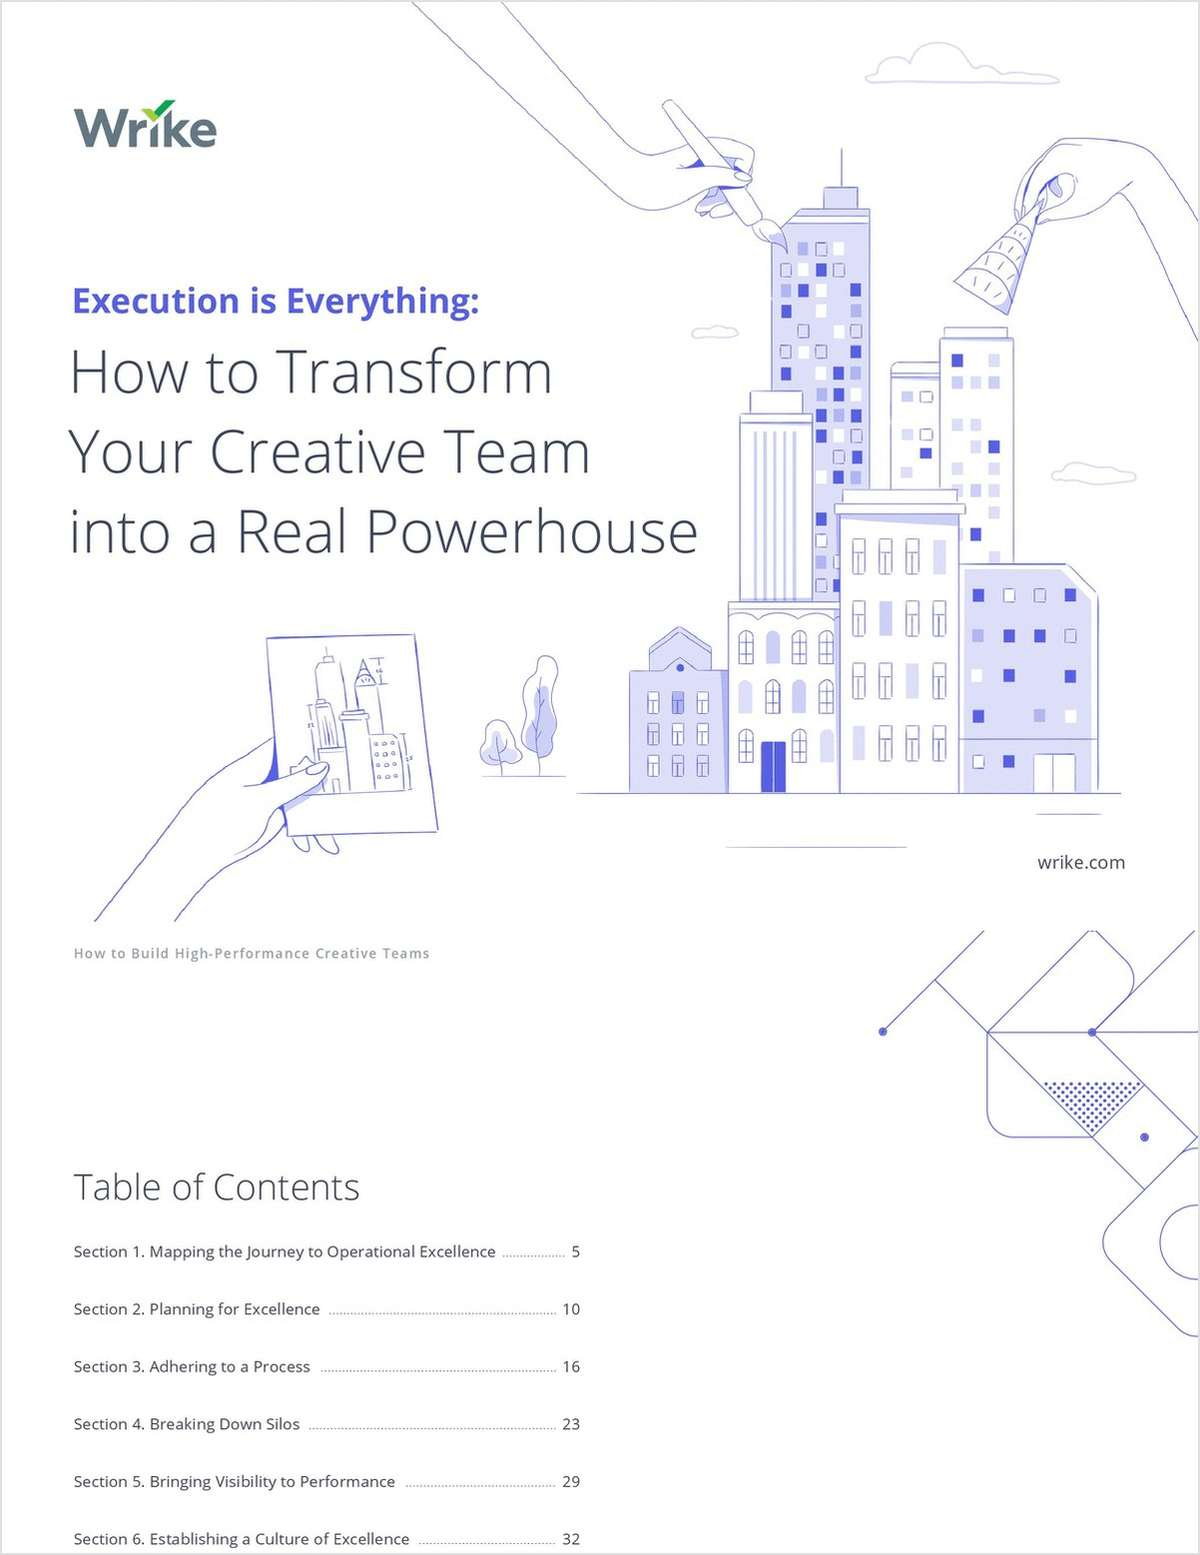 Execution is Everything: How to Transform Your Creative Team into a Real Powerhouse